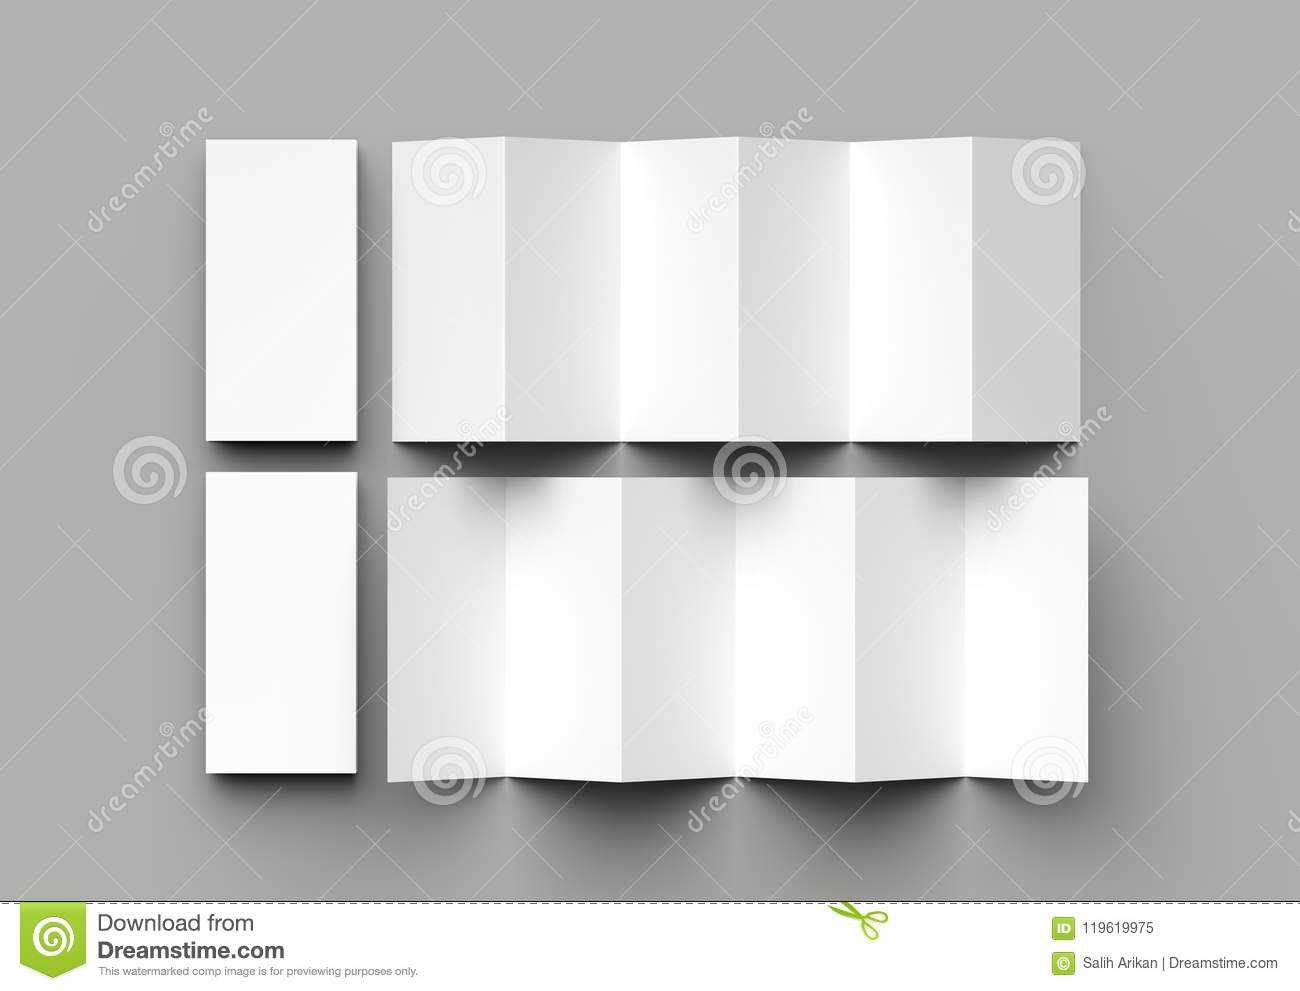 12 Page Leaflet, 6 Panel Accordion Fold - Z Fold Vertical For 12 Page Brochure Template